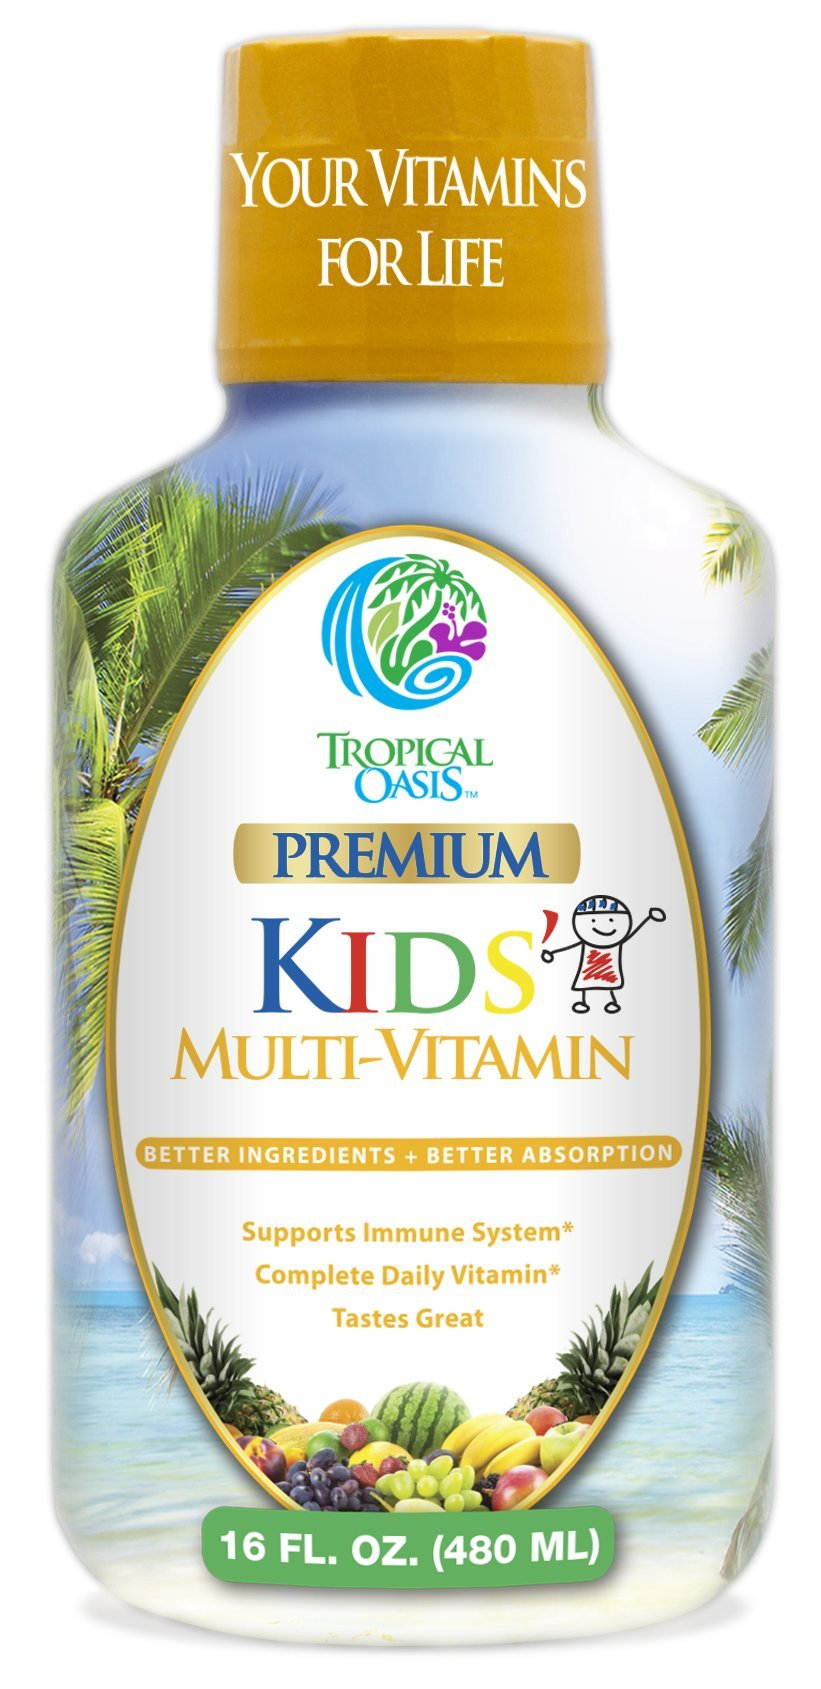 Premium Children's Liquid Multivitamin & Superfood -100% DV of 14 Vitamins for Kids Ages 4+. Great Tasting, Non-GMO, No Sugar - Max Absorption - 16 oz, 32 Serv